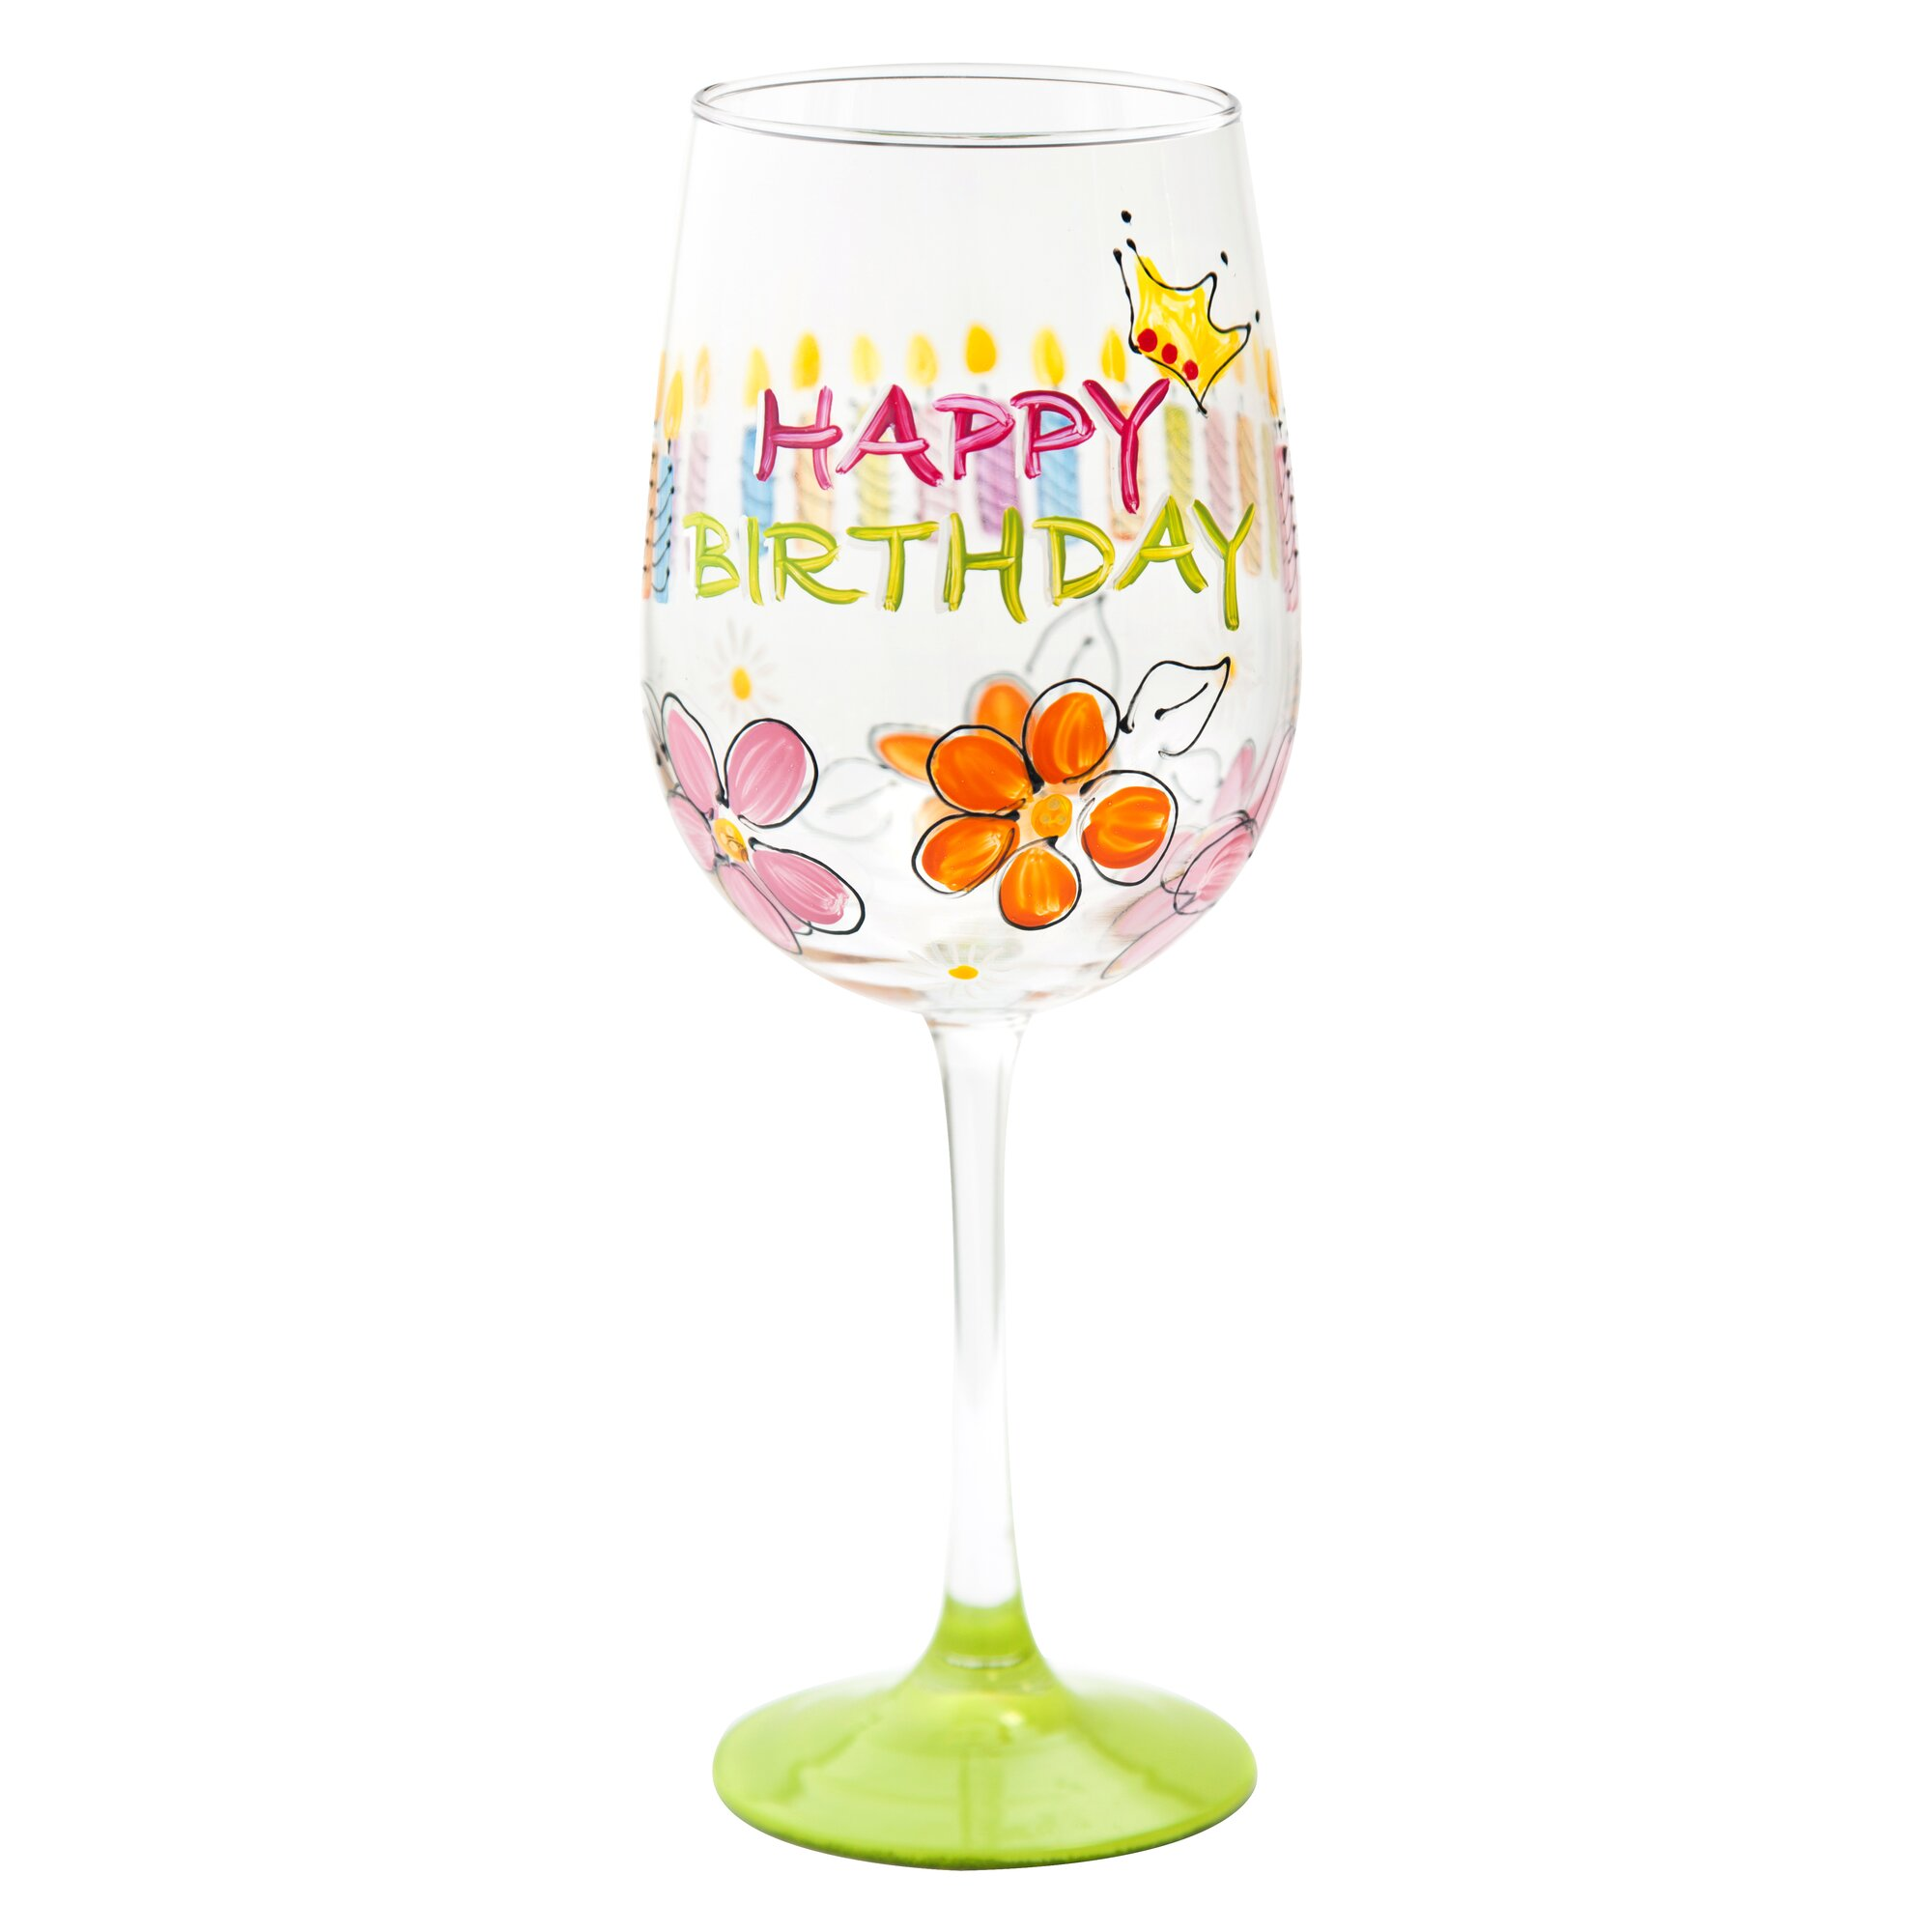 Pat Barker Designs Happy Birthday Wine Glass